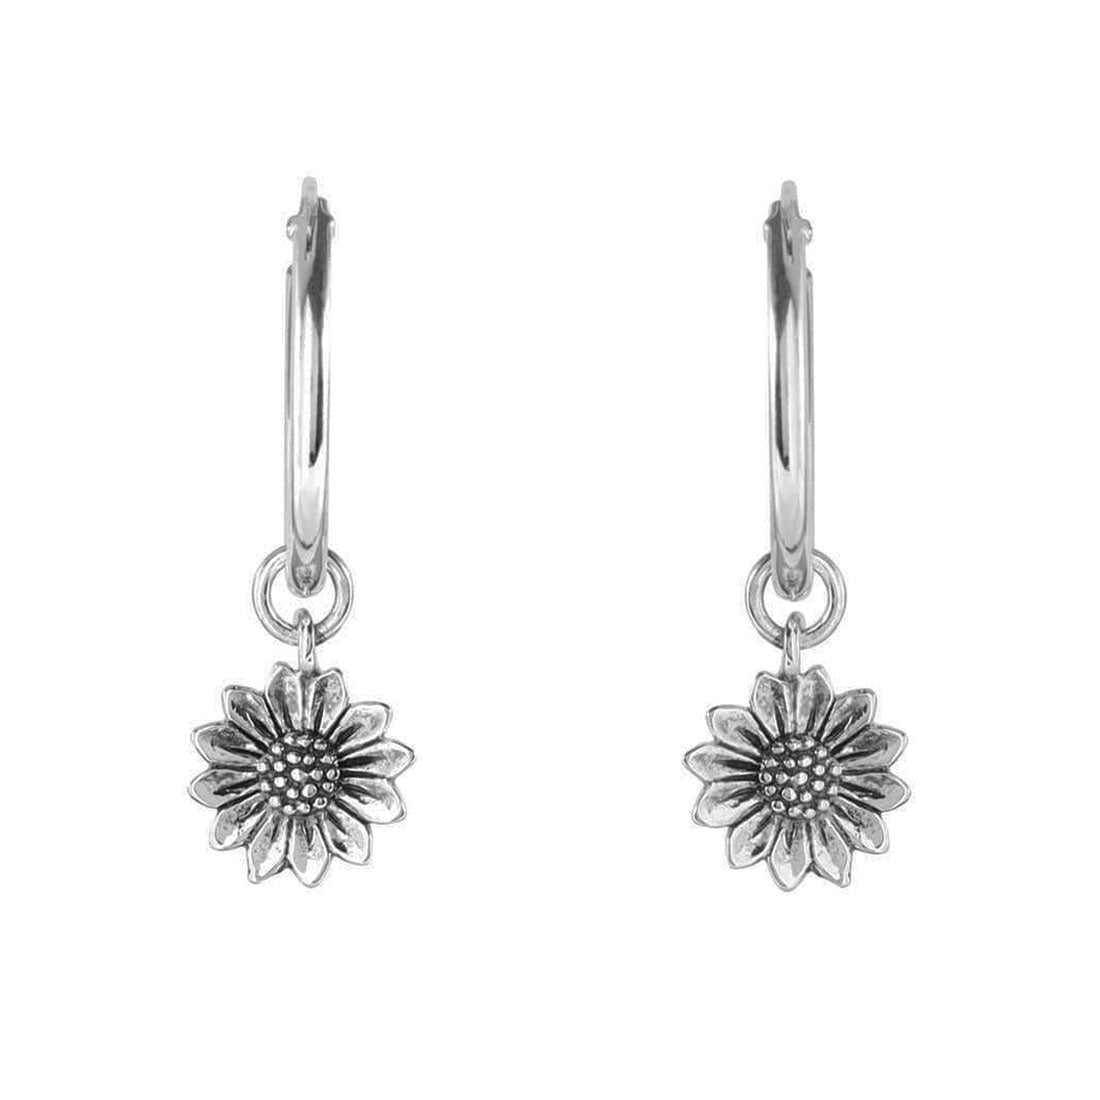 Midsummer Star Earrings Delicate Sunflower Sleepers